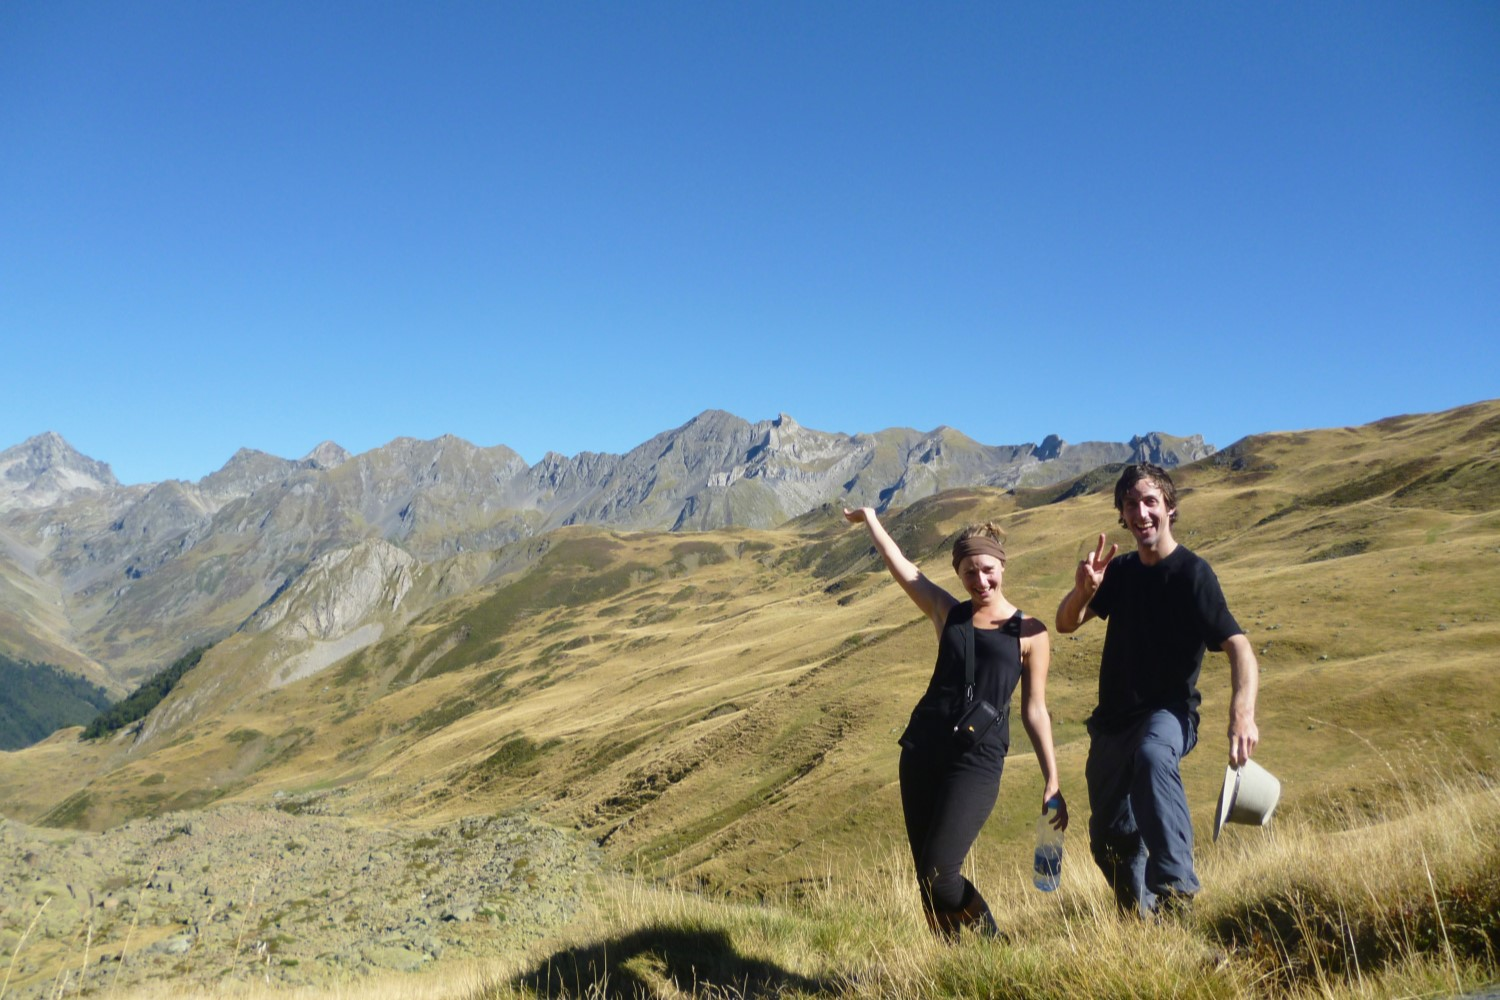 Rocking a merino t-shirt in warm weather on the Pyrenees.